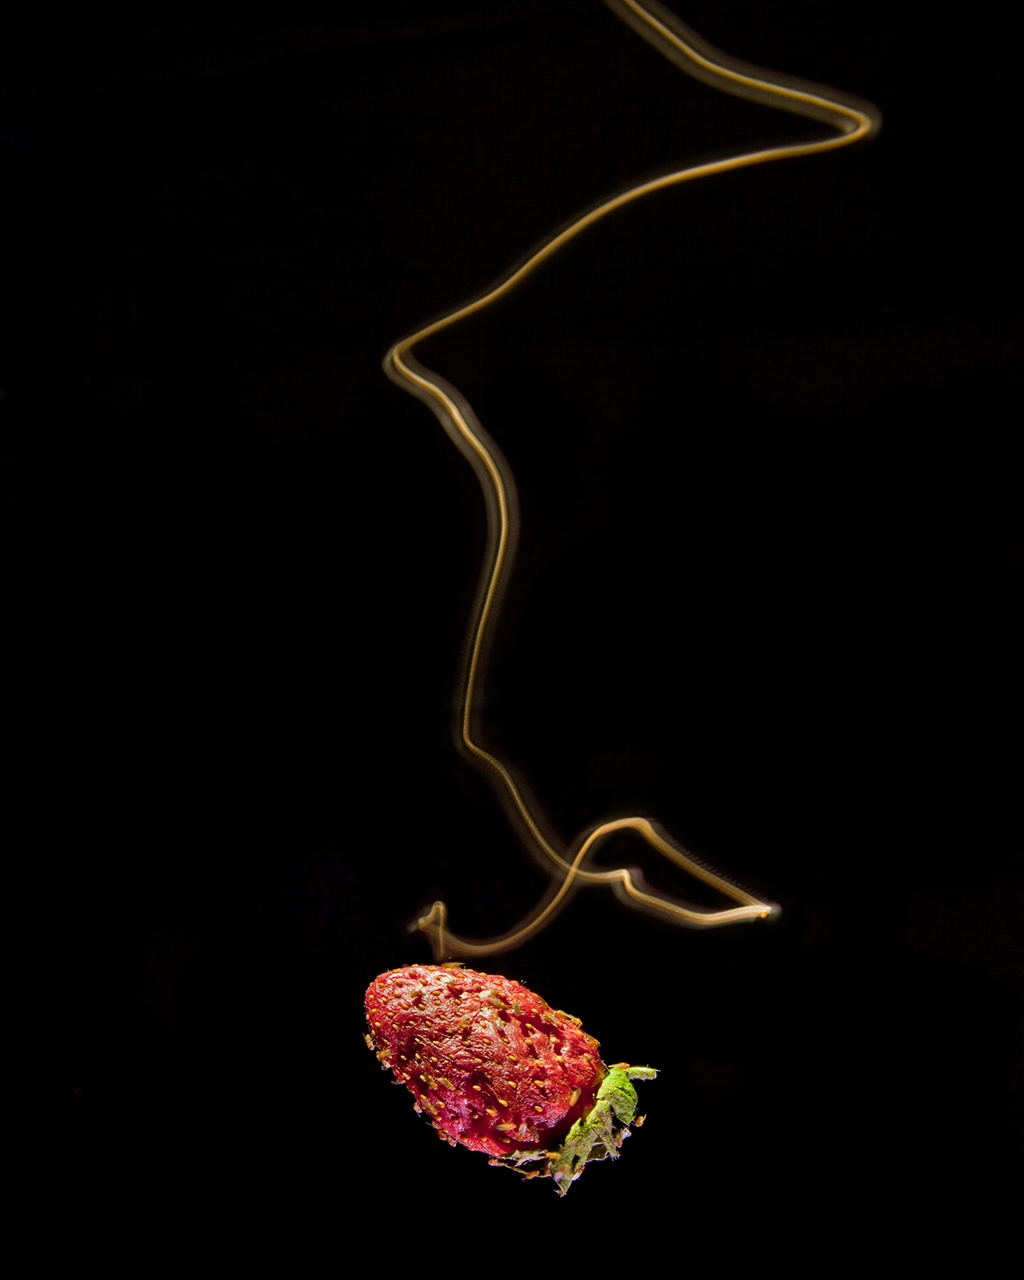 Long exposure of an illuminated fly as it approaches a fermenting strawberry.